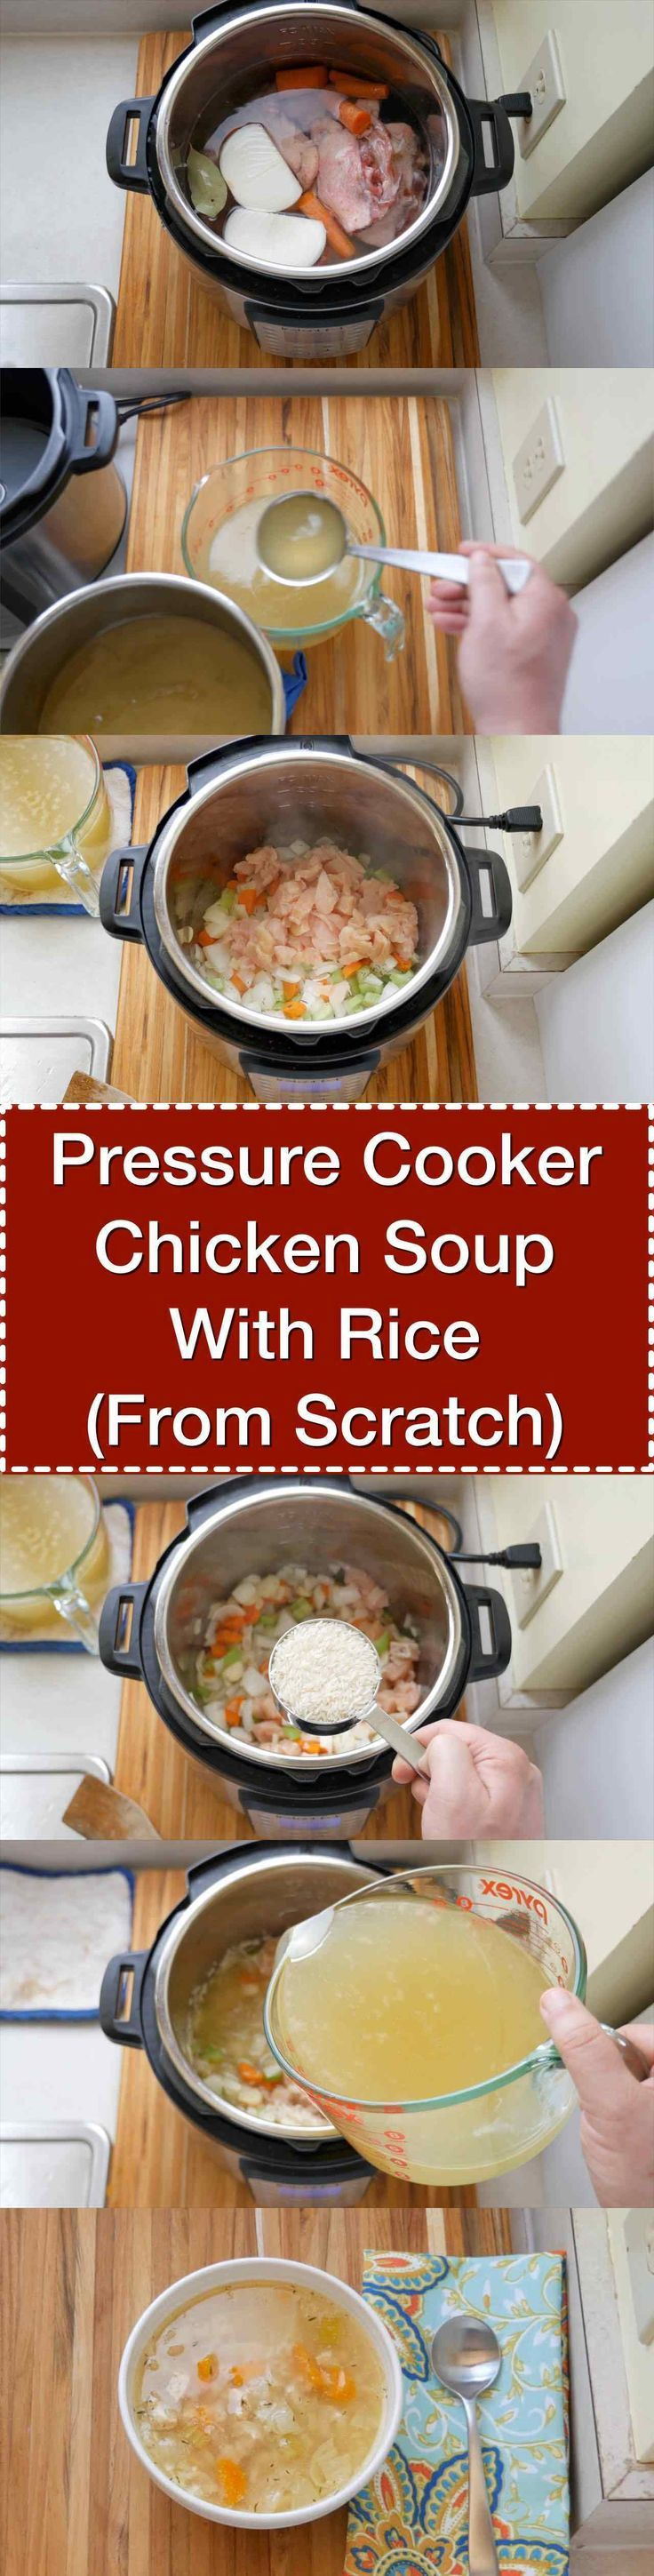 Pressure Cooker Chicken Soup With Rice (From Scratch) | DadCooksDinner.com